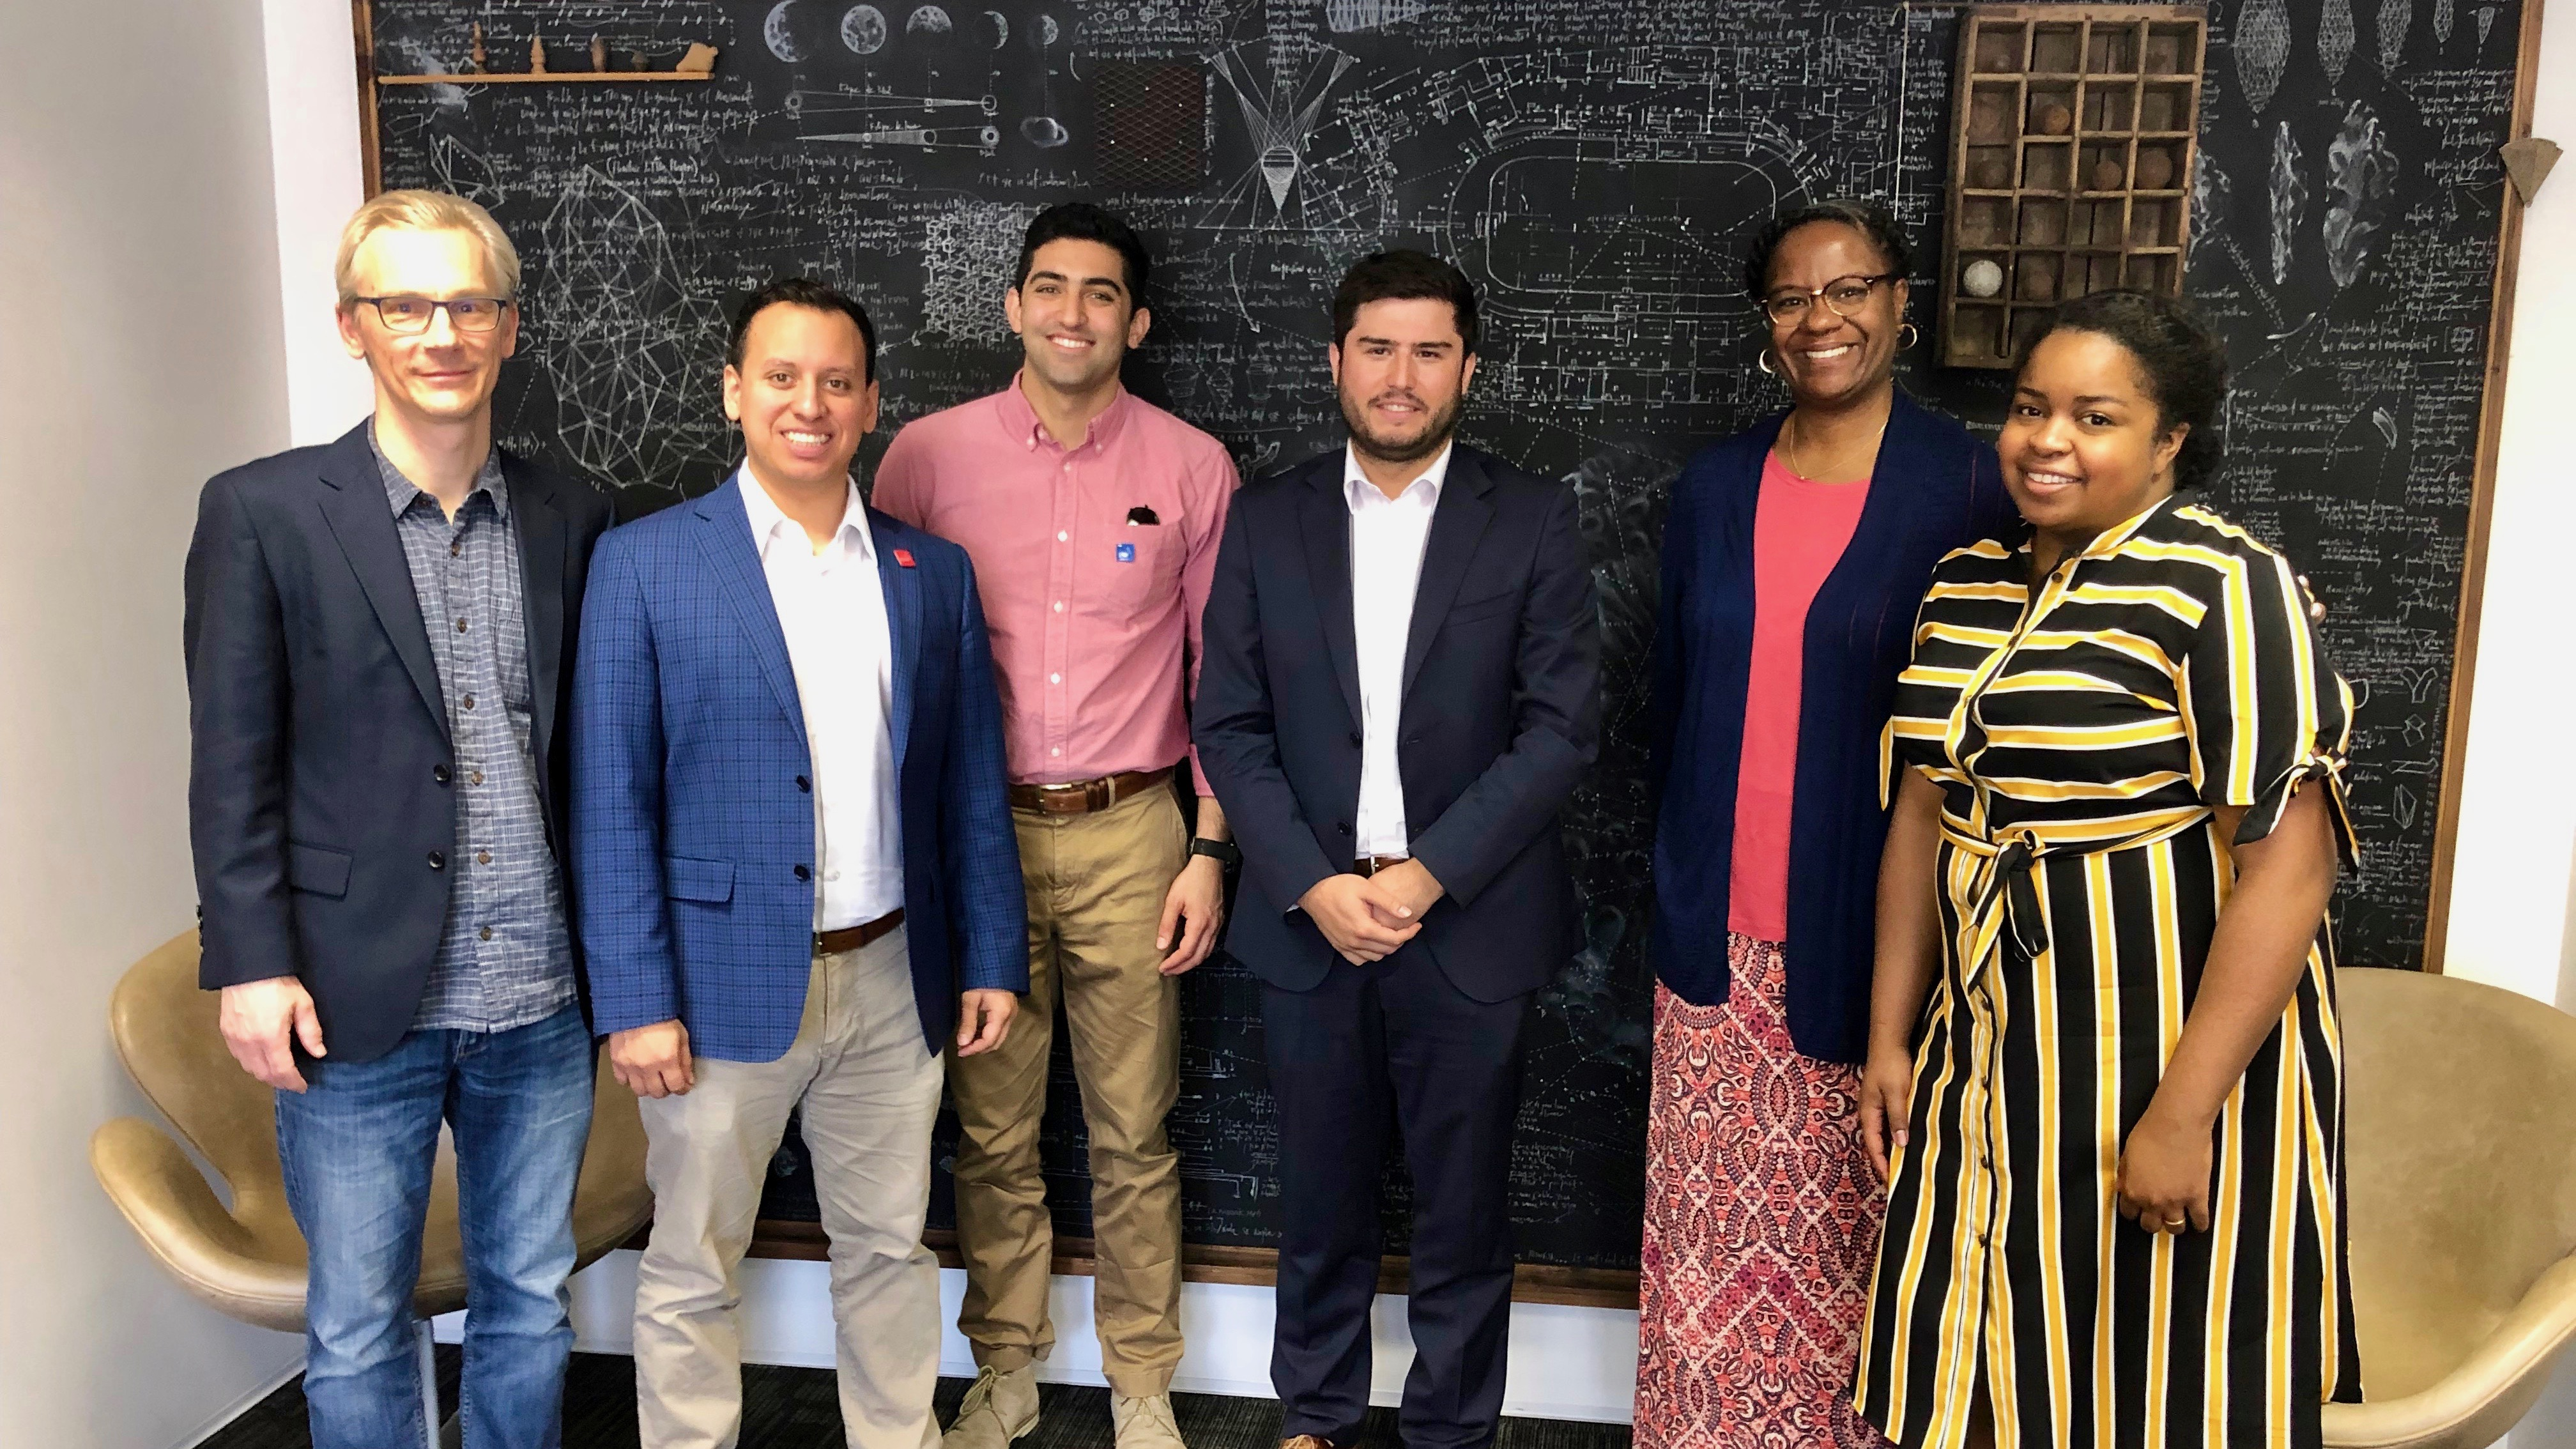 MBA students Stefan Bergman, Jesse Rodriguez, and Bryan Dastmalchi; CONICYT International Programs Coordinator Jack Brady; GSM Faculty Advisor Dr. Keisha Nichols; and GSM student Noelle Blanchard at CONICYT